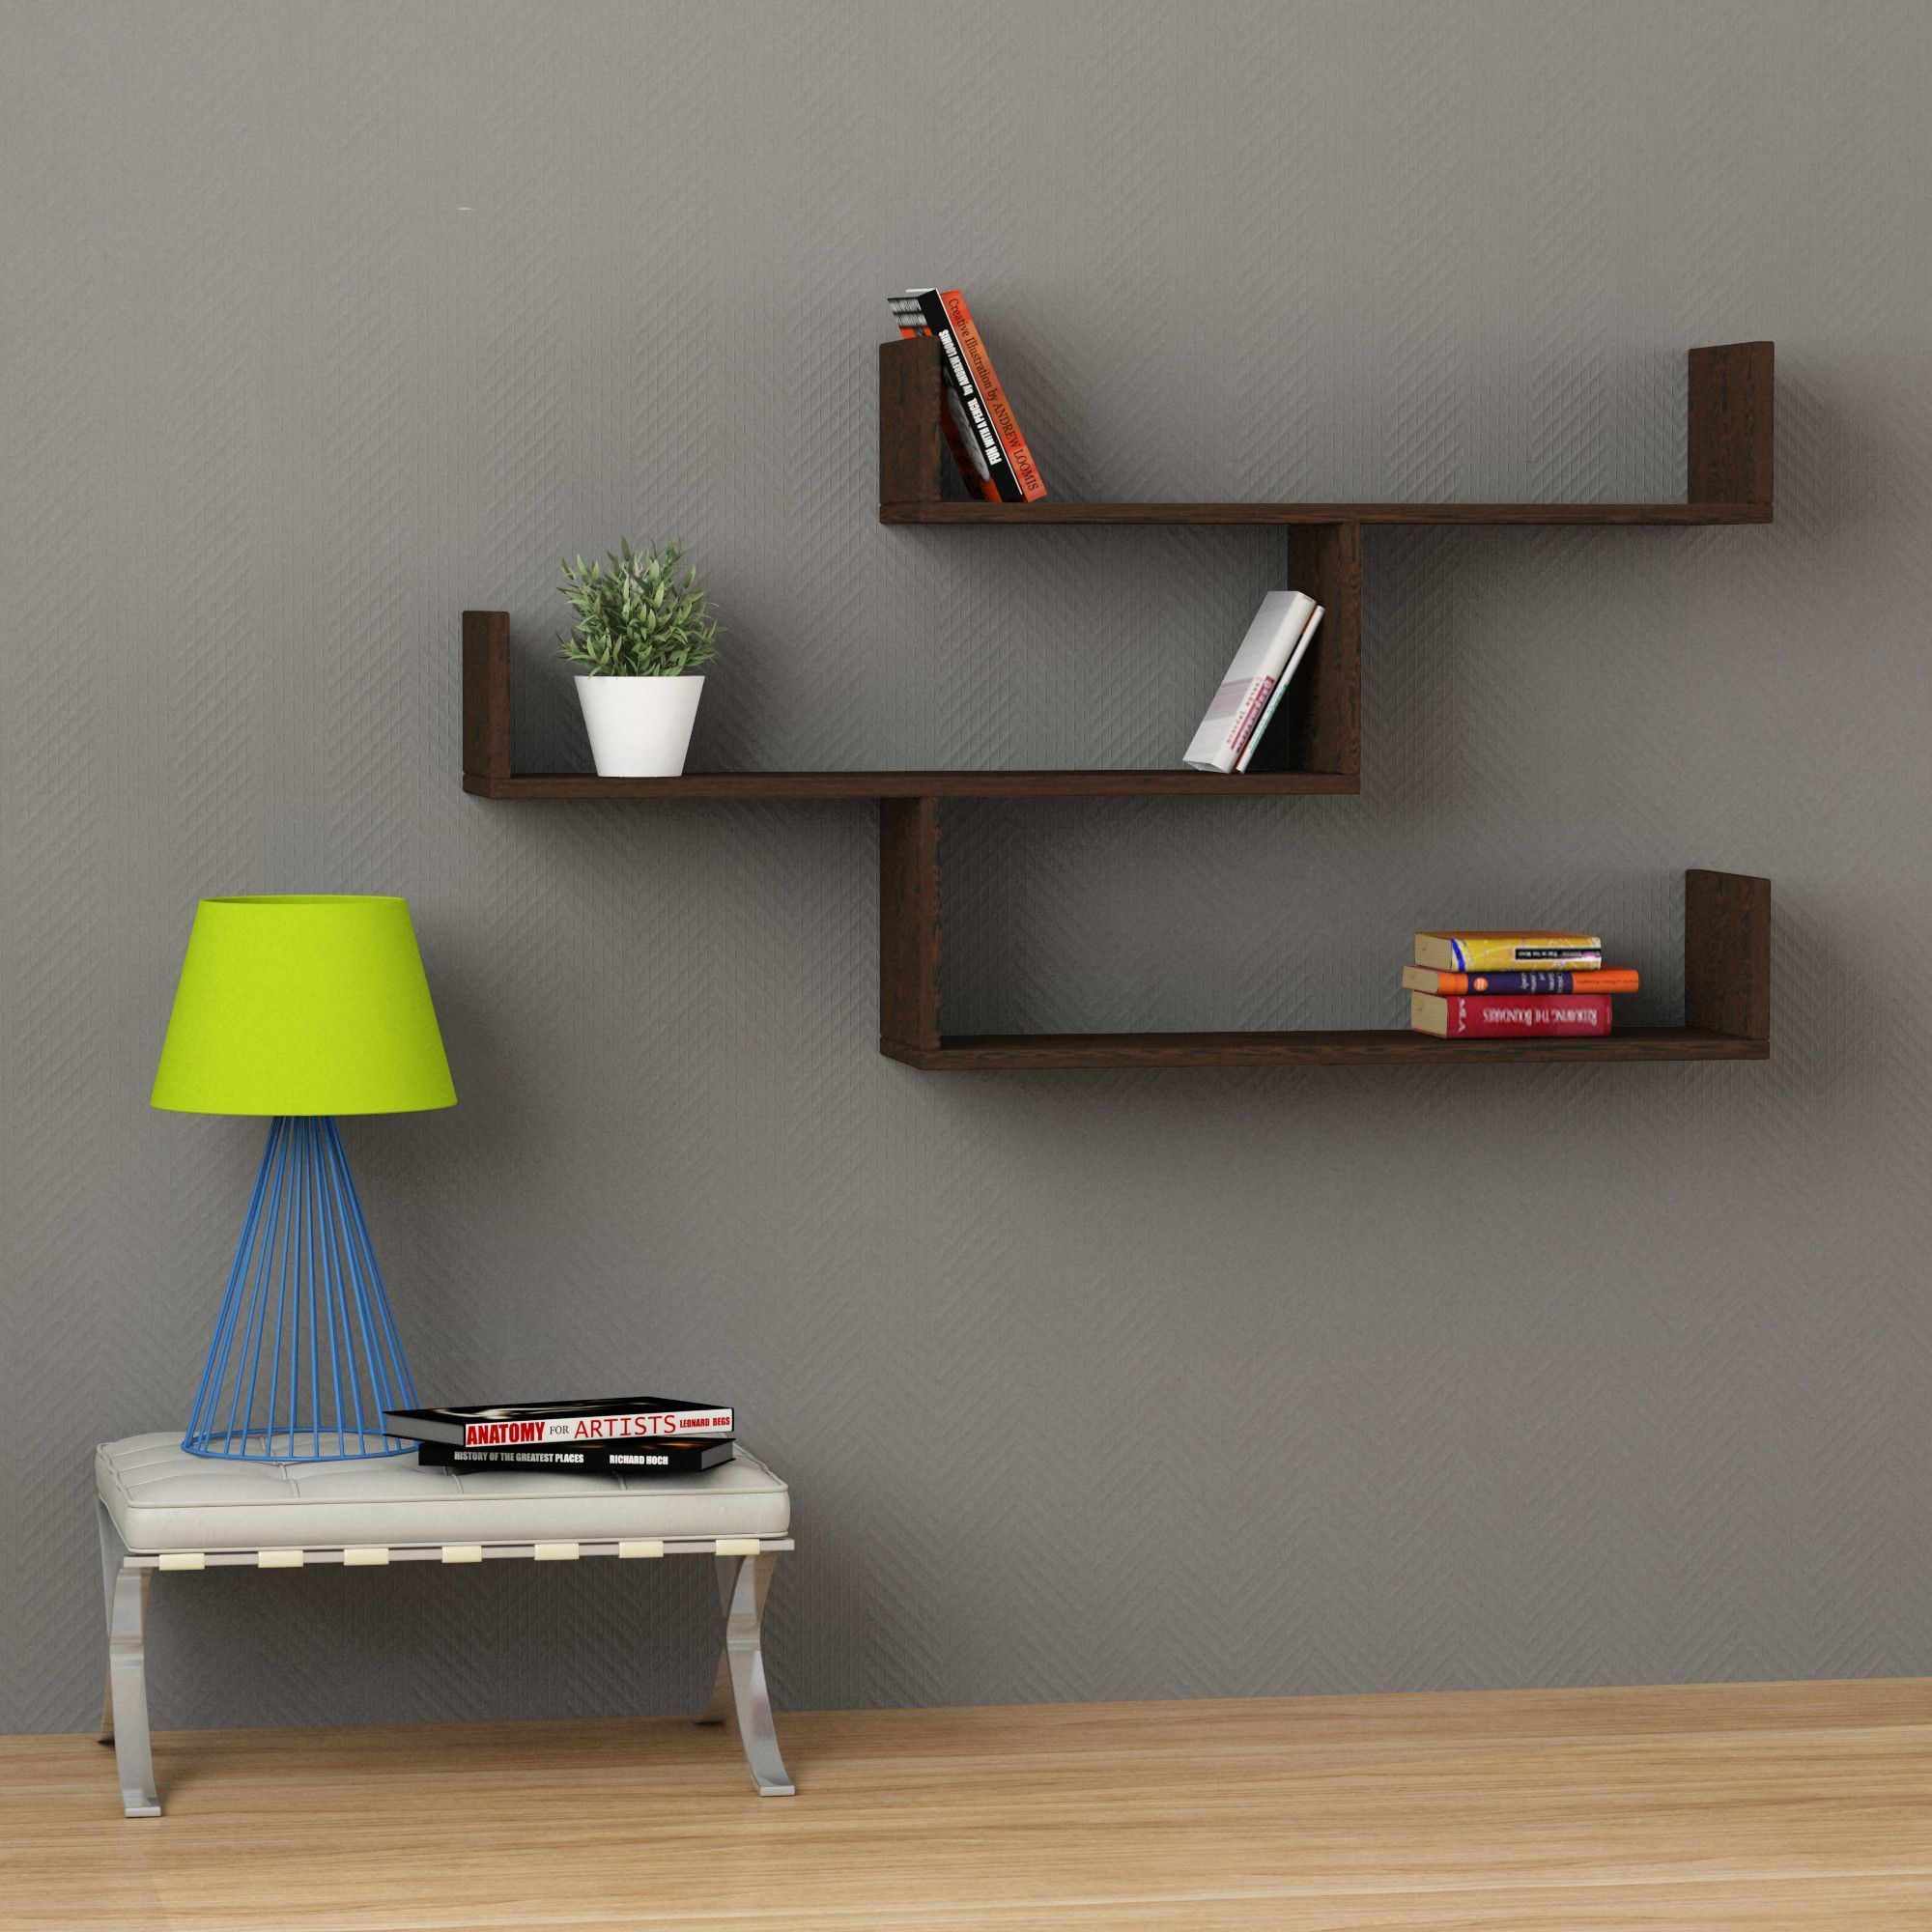 This Simple And Popular Modern Style Wall Shelf Has An Innovative Space Saving Design While Bein Unique Wall Shelves Modern Wall Shelf Wall Shelves Living Room